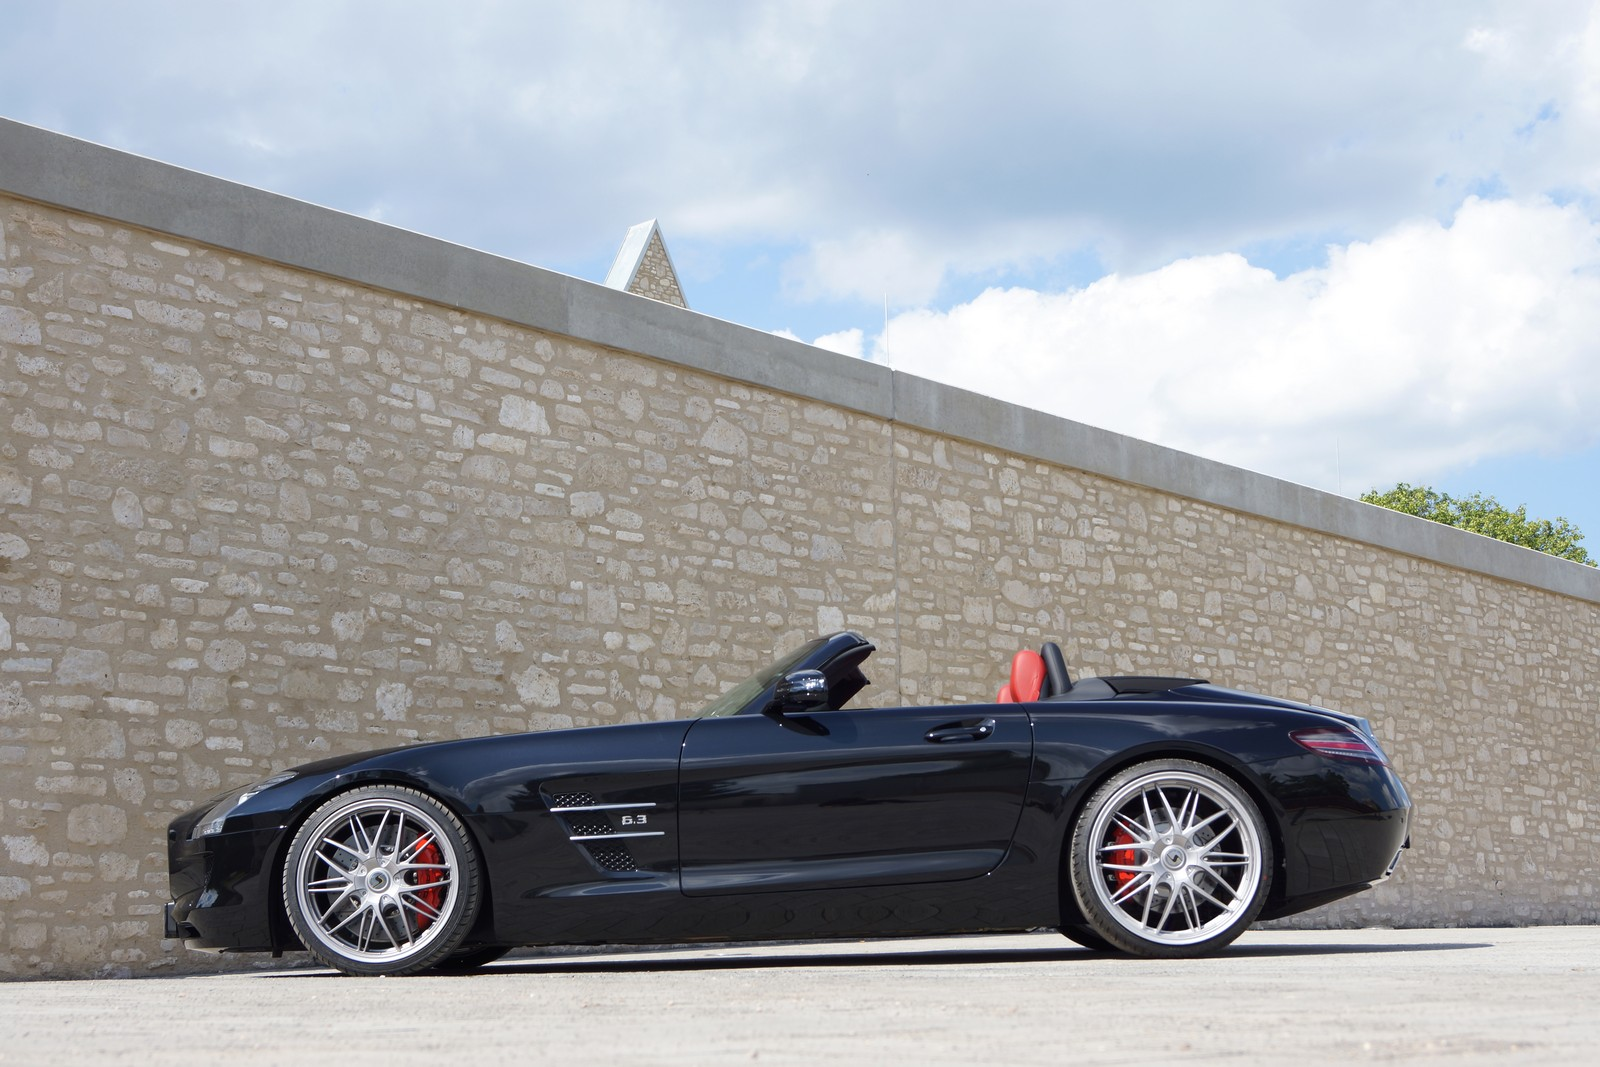 official mercedes benz sls63 amg roadster by senner tuning gtspirit. Black Bedroom Furniture Sets. Home Design Ideas